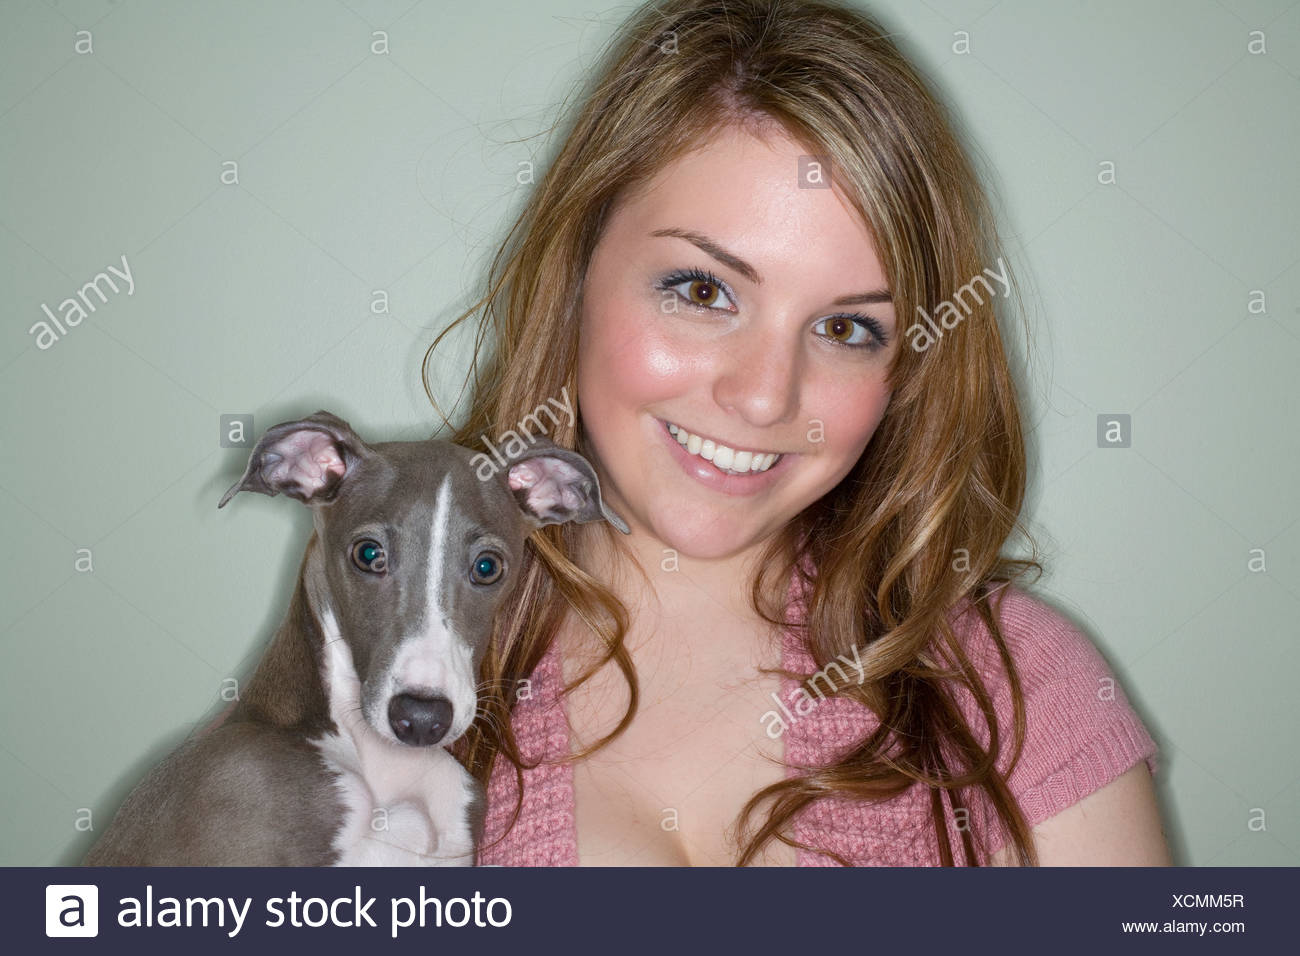 Portrait of young woman with Italian greyhound dog - Stock Image